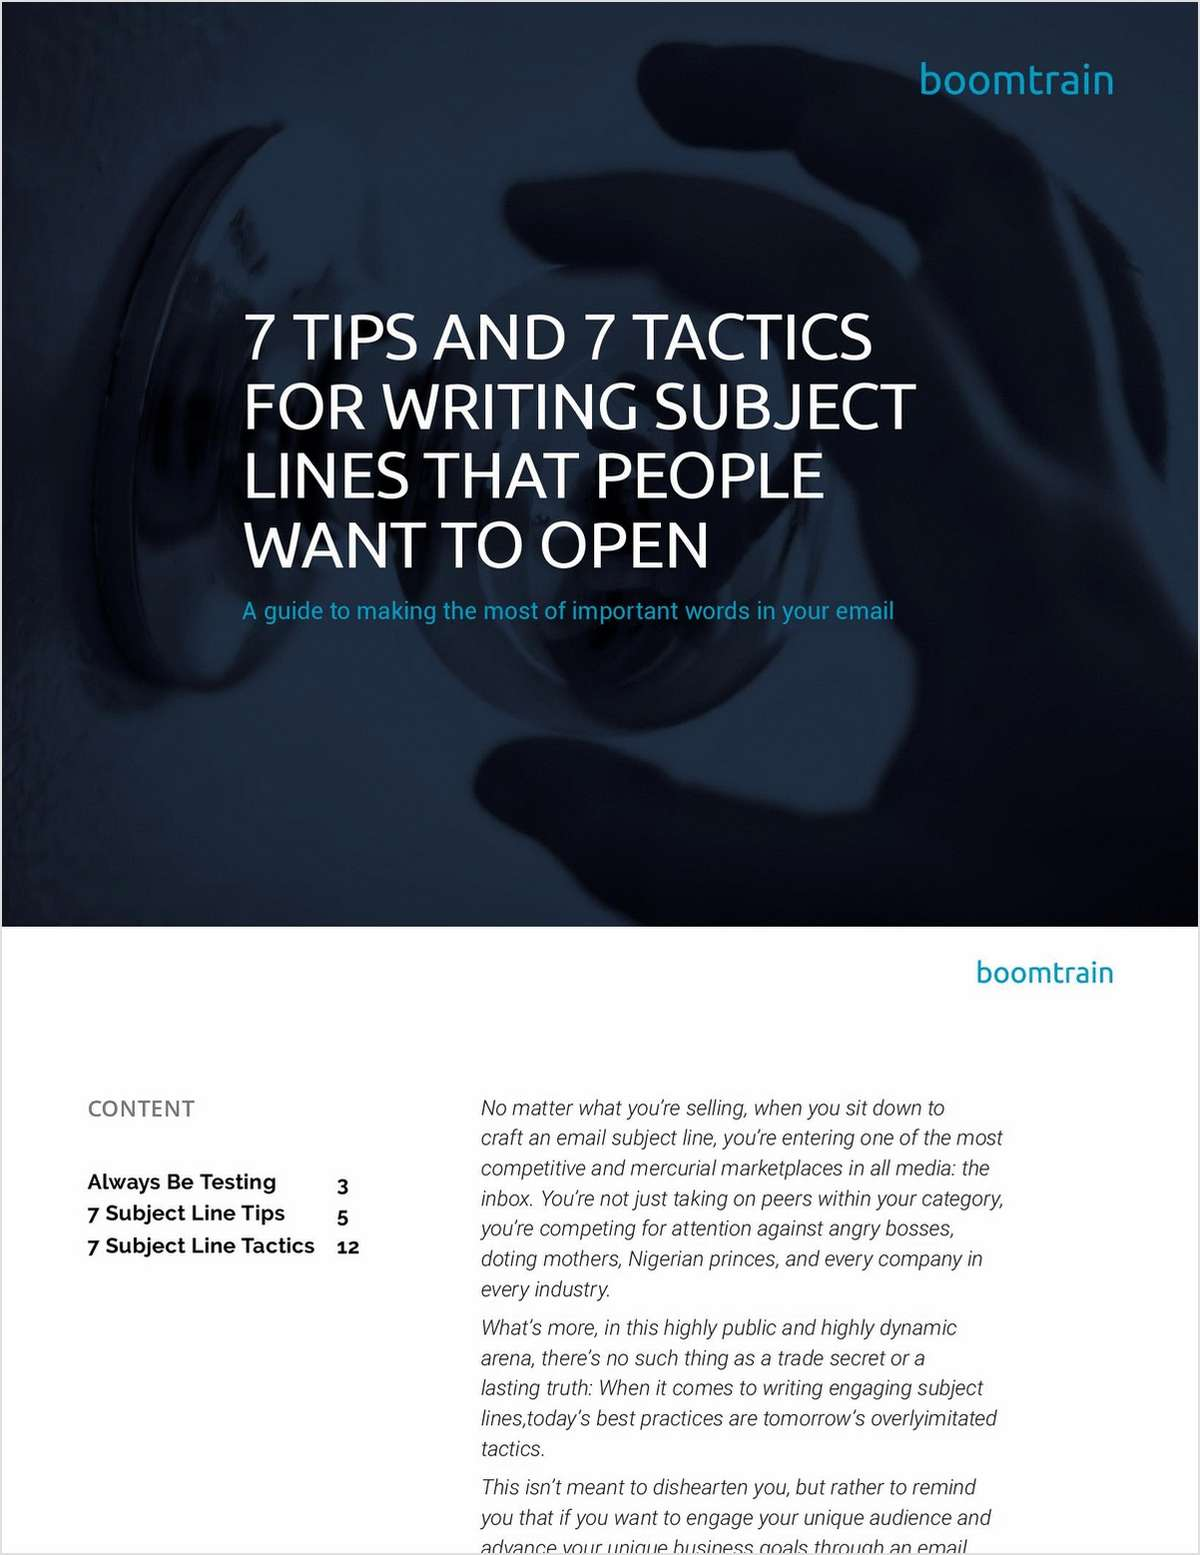 7 Tips and 7 Tactics for Writing Email Subject Lines that People Want to Open